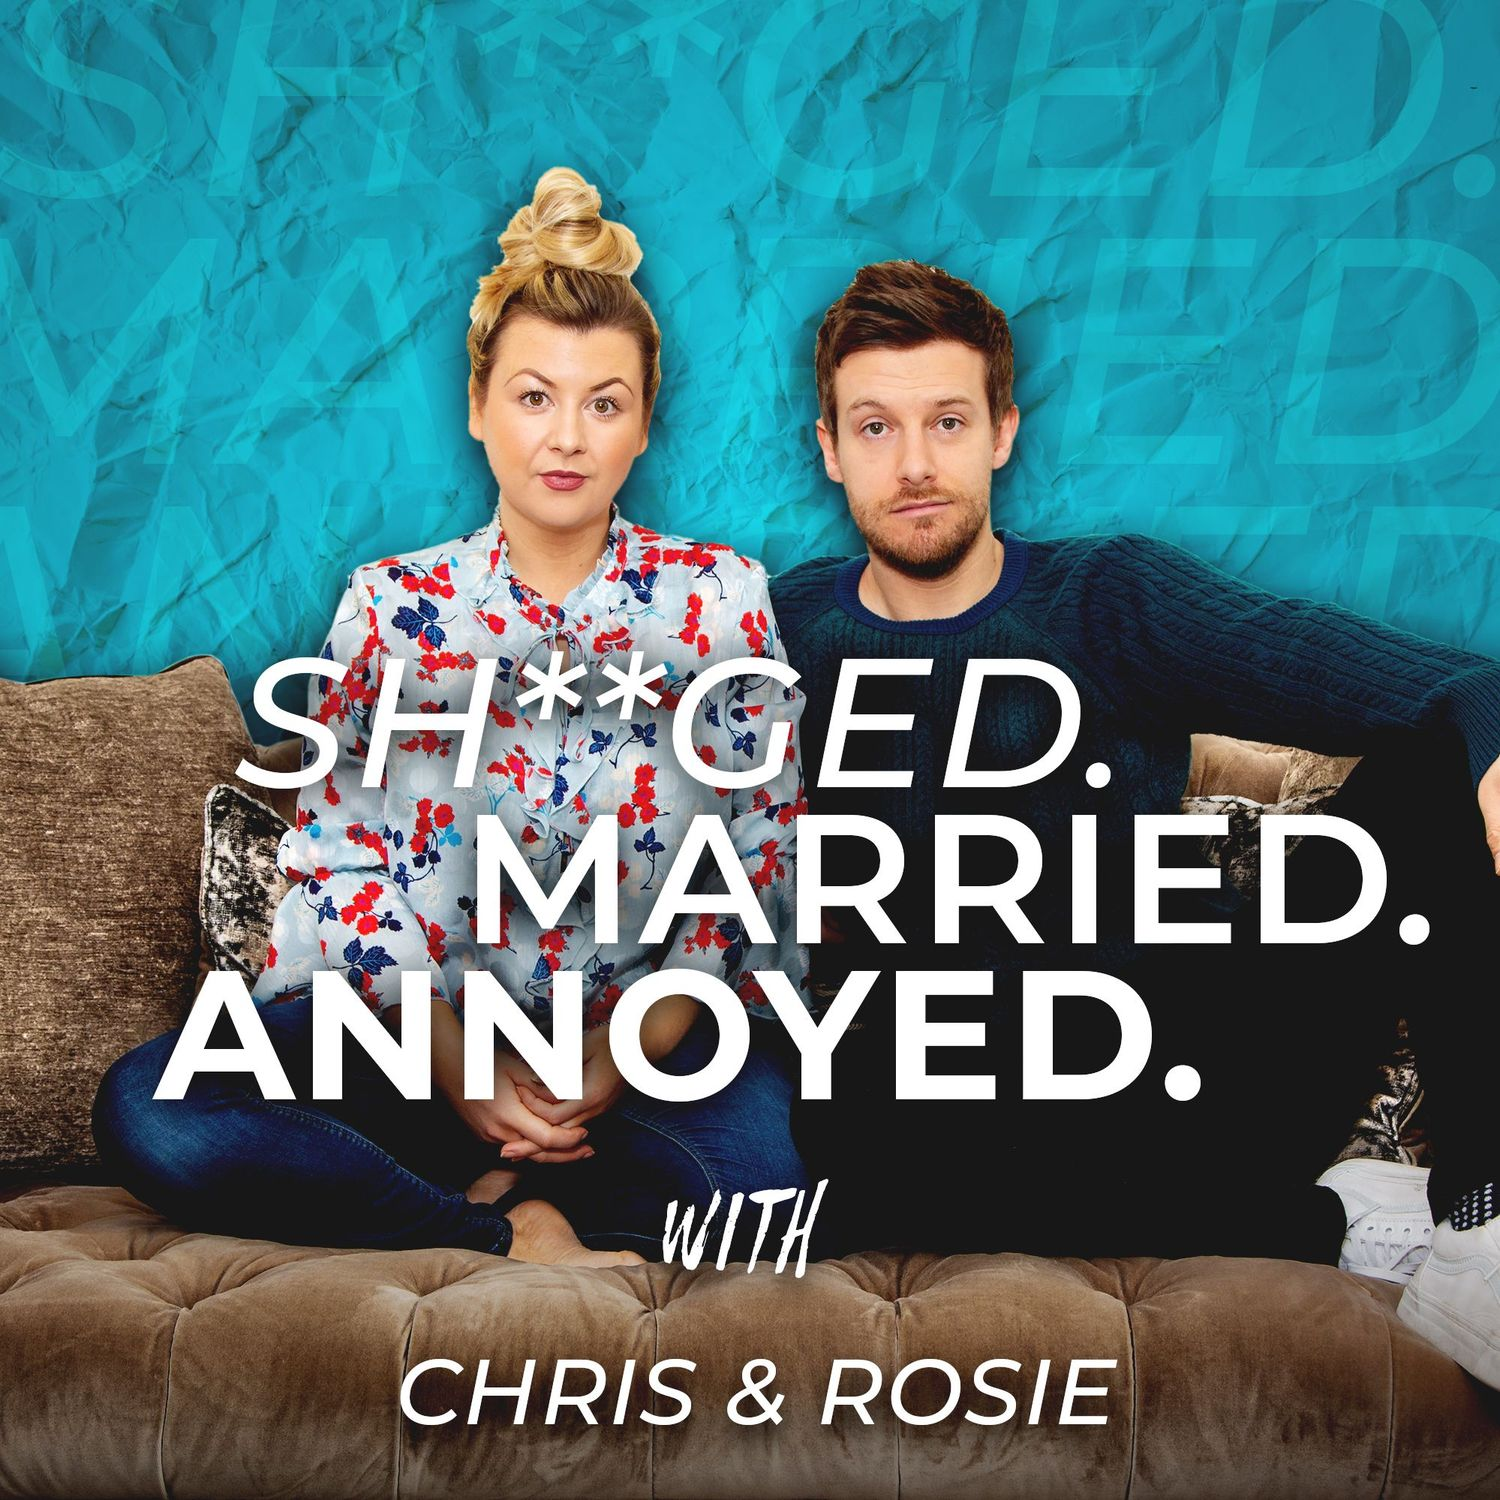 Sh**ged Married Annoyed